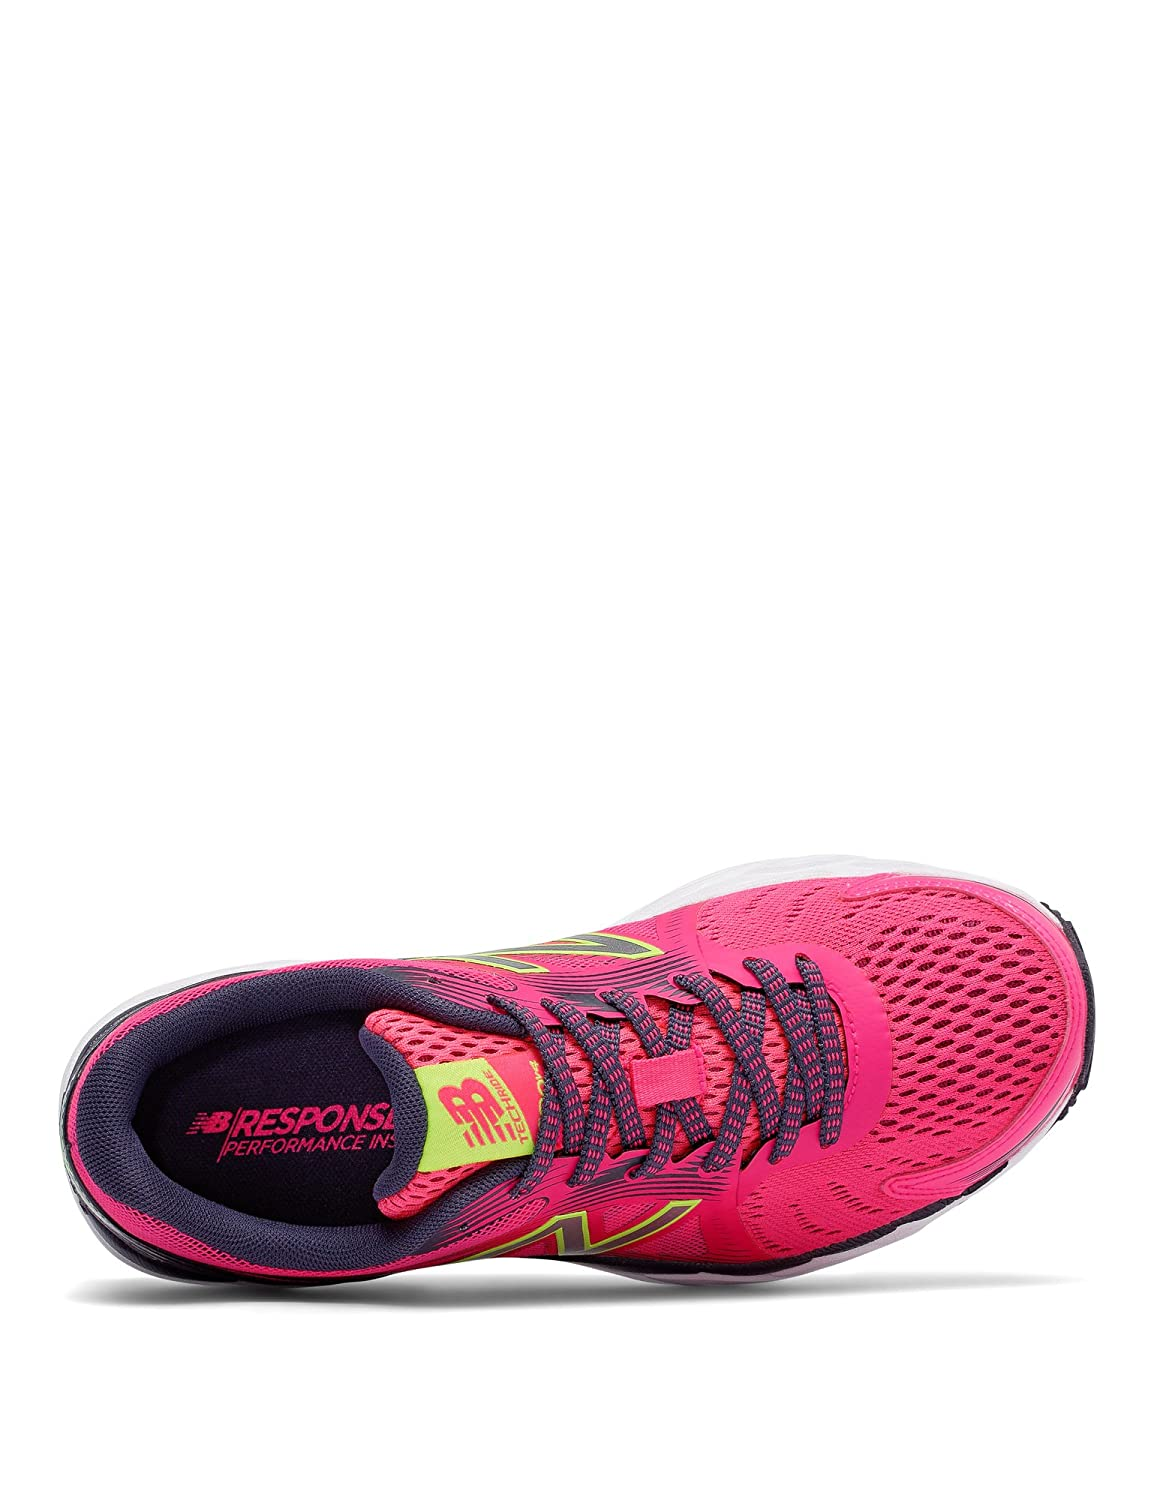 New Balance Women's W680v4 Running Shoe B01FSJCNES 11 B(M) US|Alpha Pink/Outer Space/Lime Glow